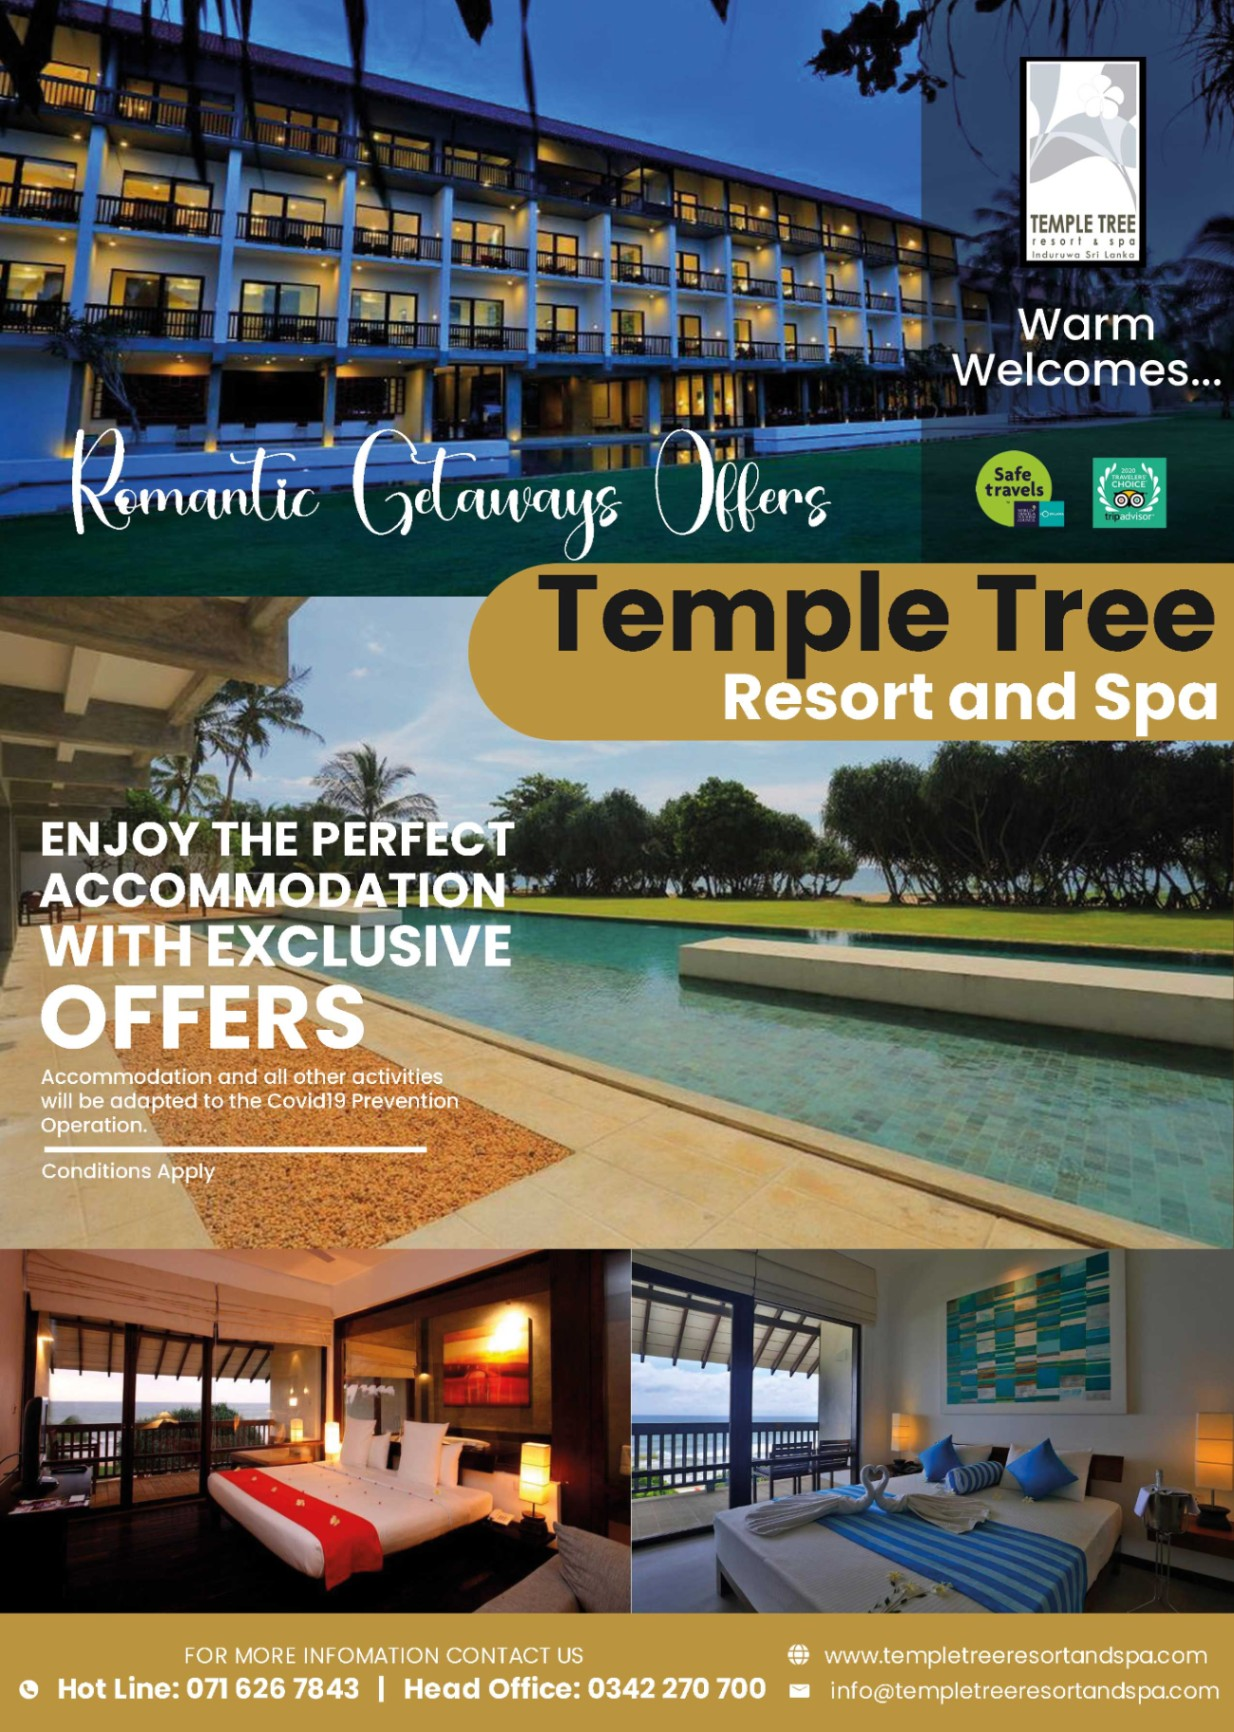 Temple Tree Resort and Spa-Romantic Getaways Offers